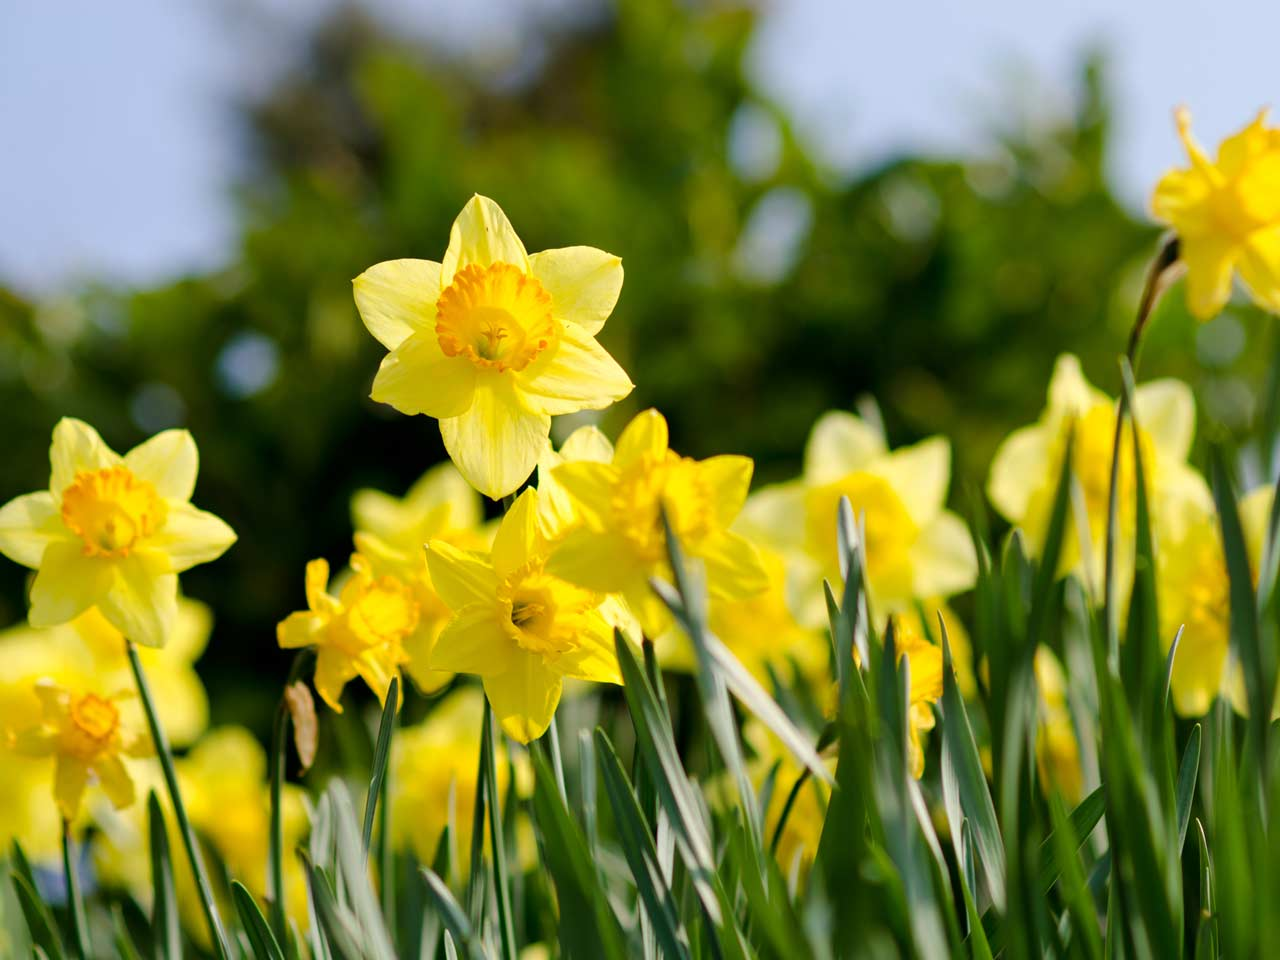 The Daffodil Flower: Its Meanings and Symbolism